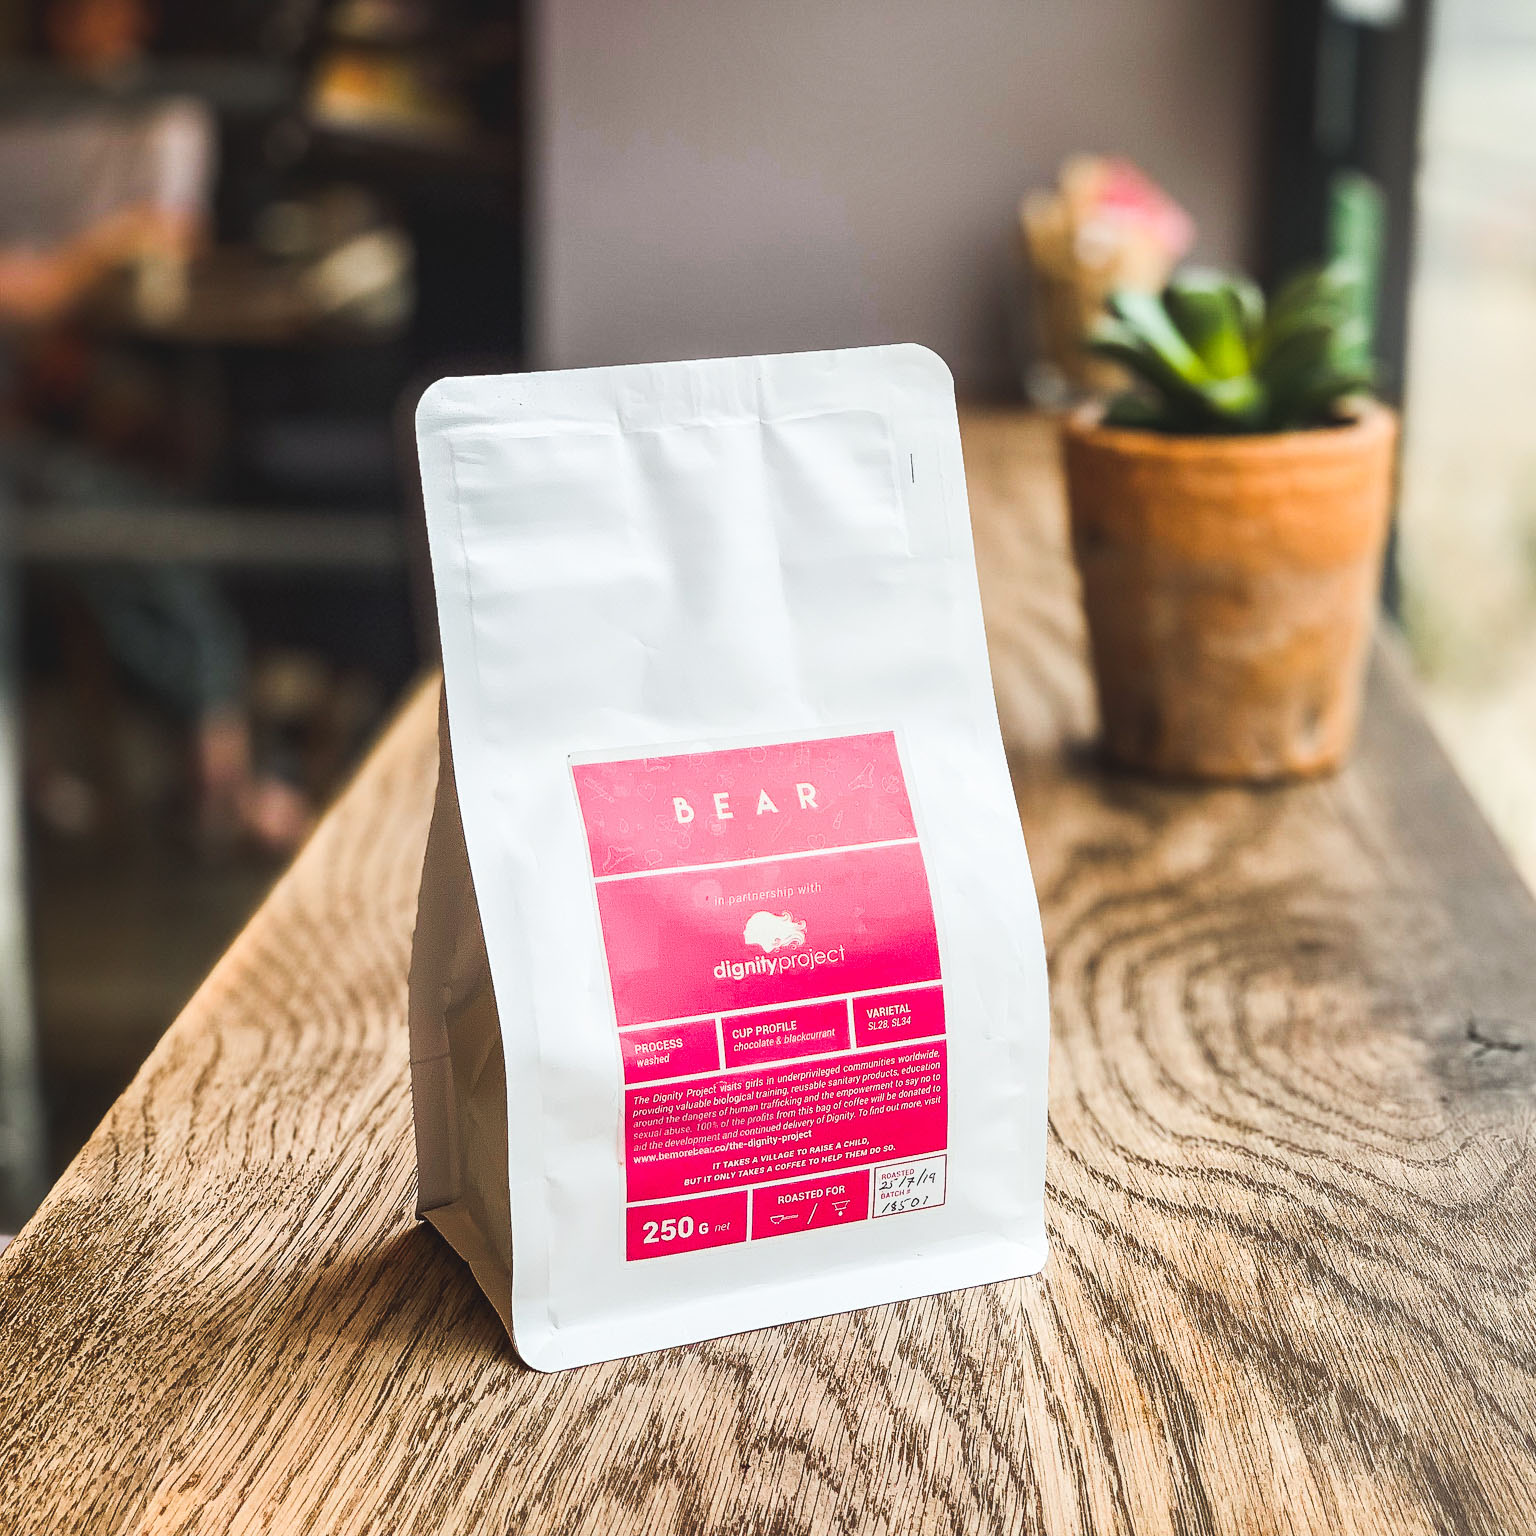 BEAR x The Dignity Project Coffee